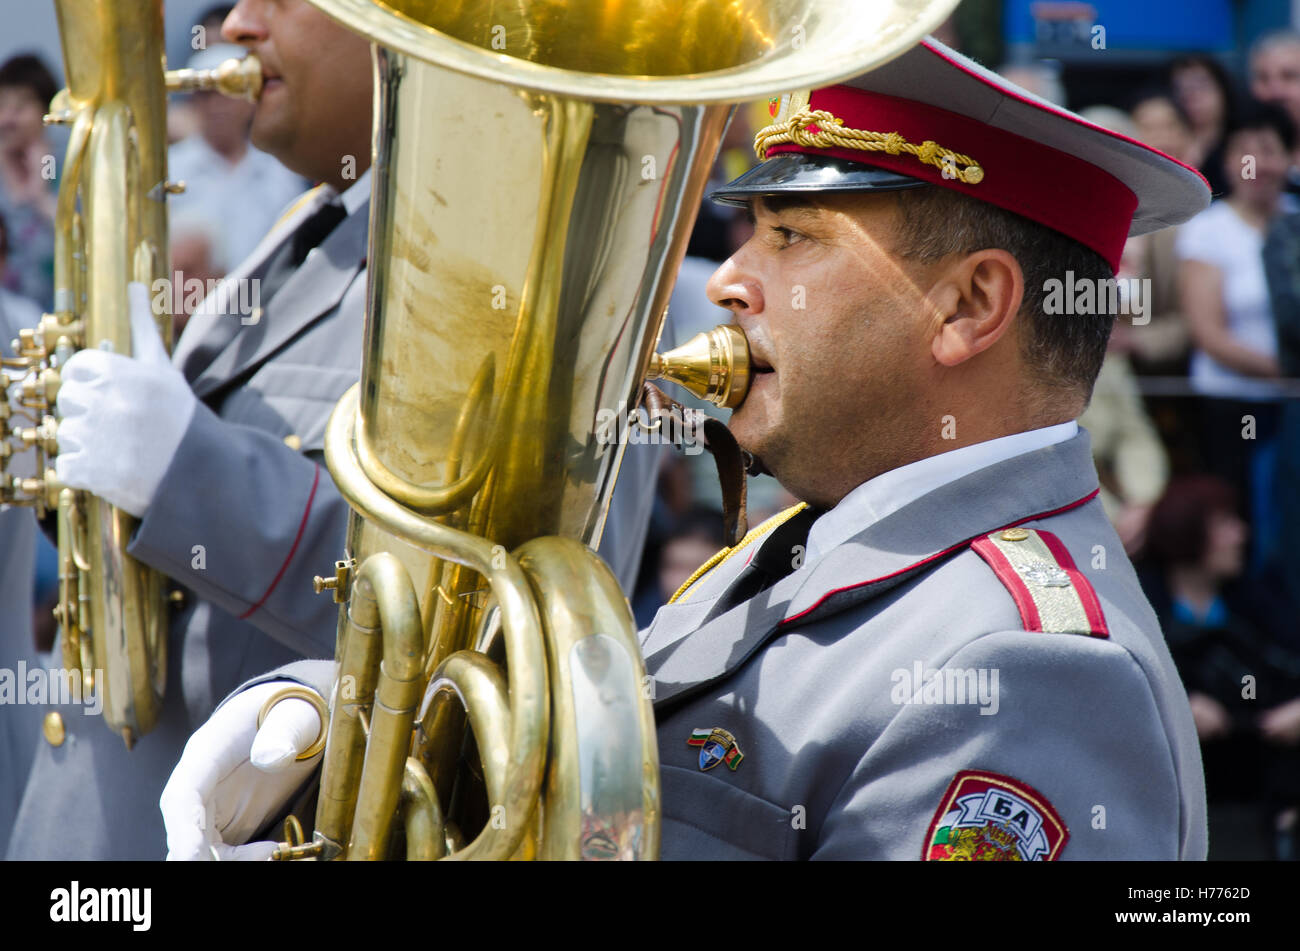 Brass band at yearly rose festival in Kazanlak, Bulgaria, wearing bulgarian army uniforms - Stock Image